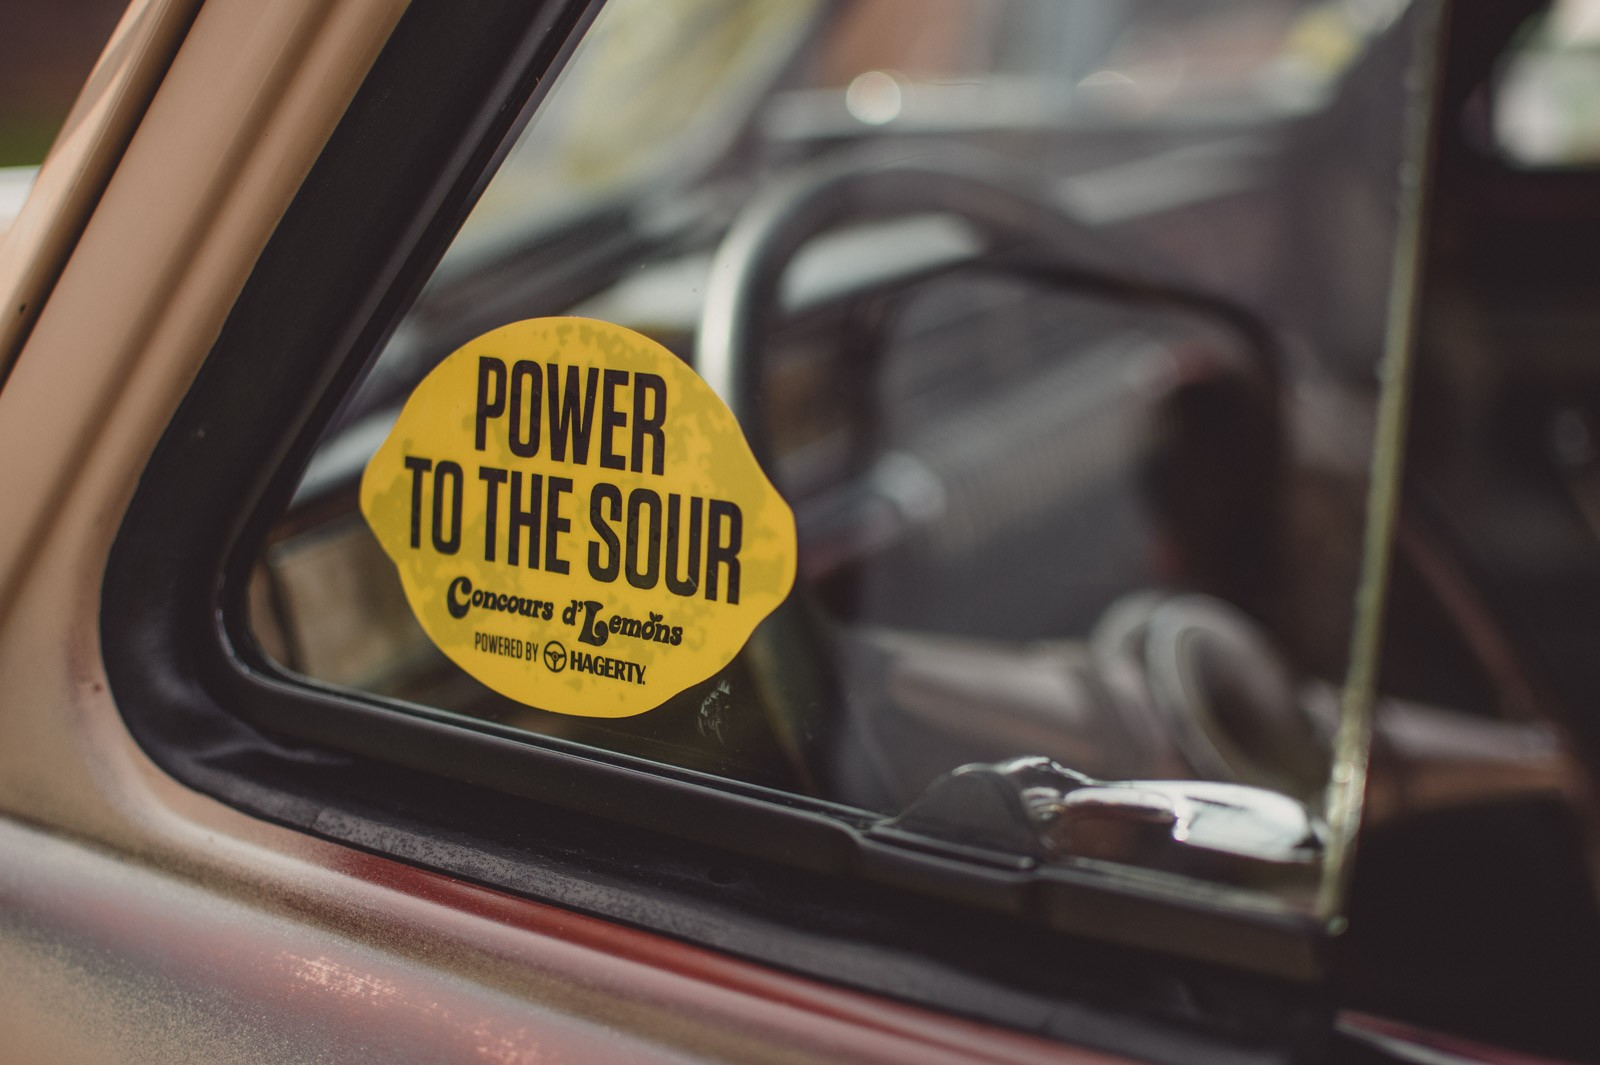 Power to the sour decal on side window of a car